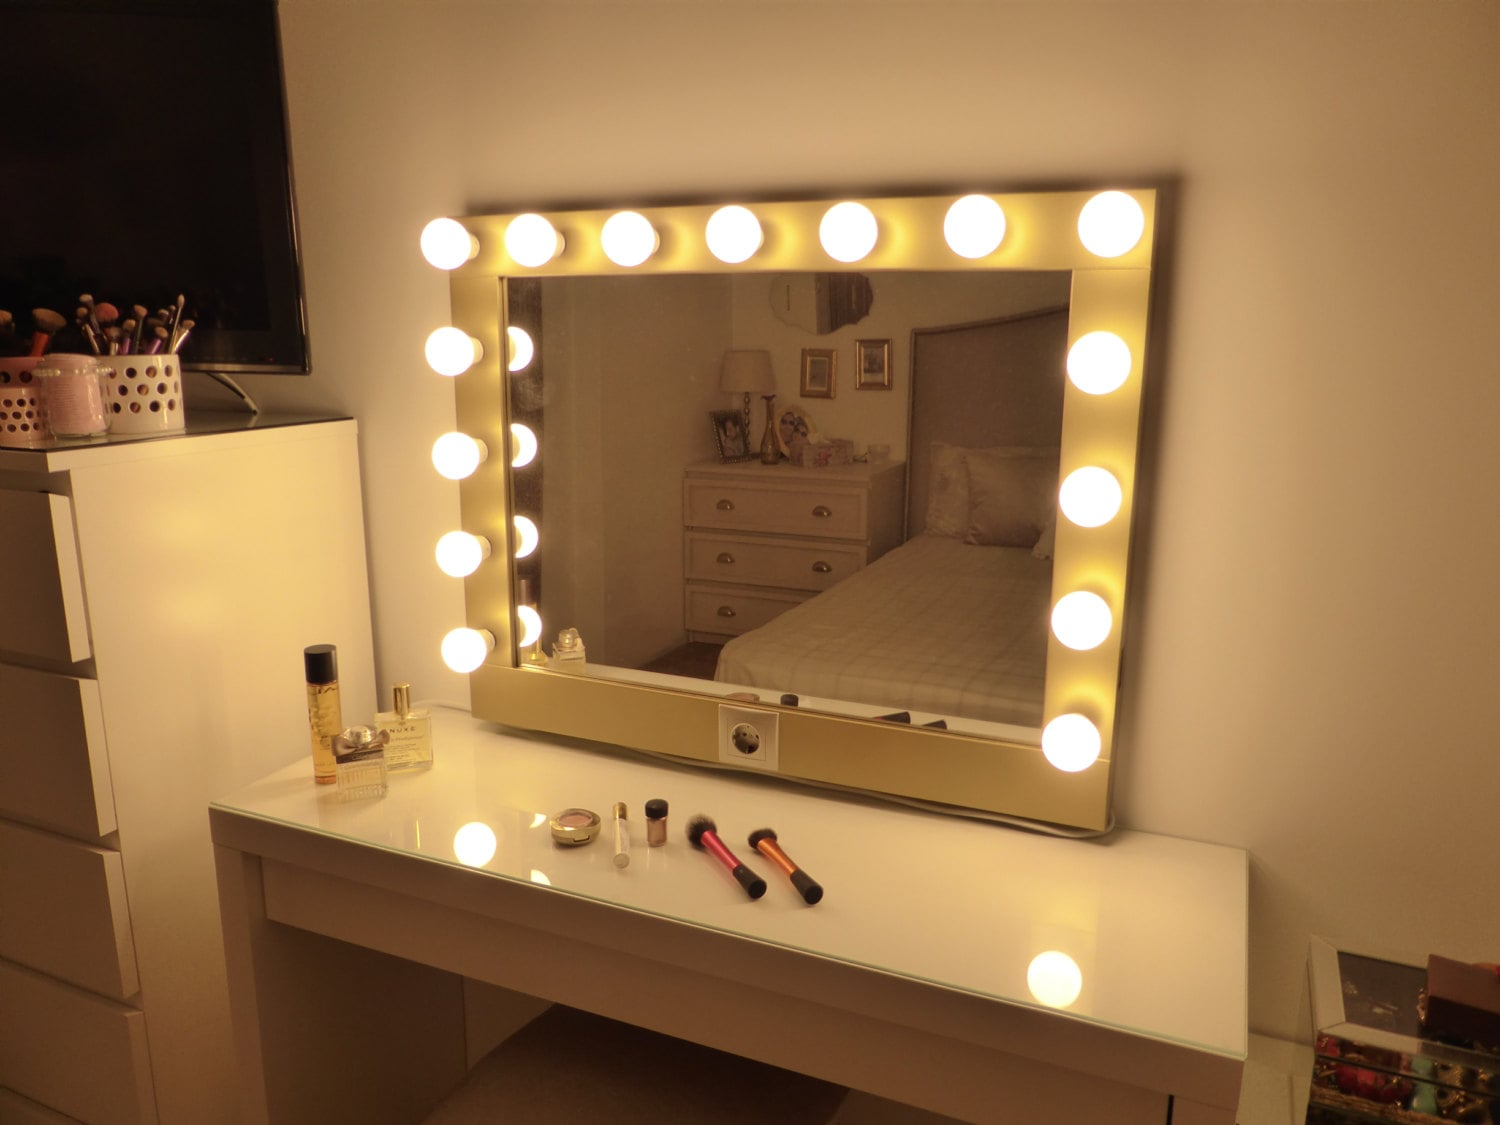 Vanity Light Makeup Mirror : Hollywood lighted vanity mirror-large makeup mirror with